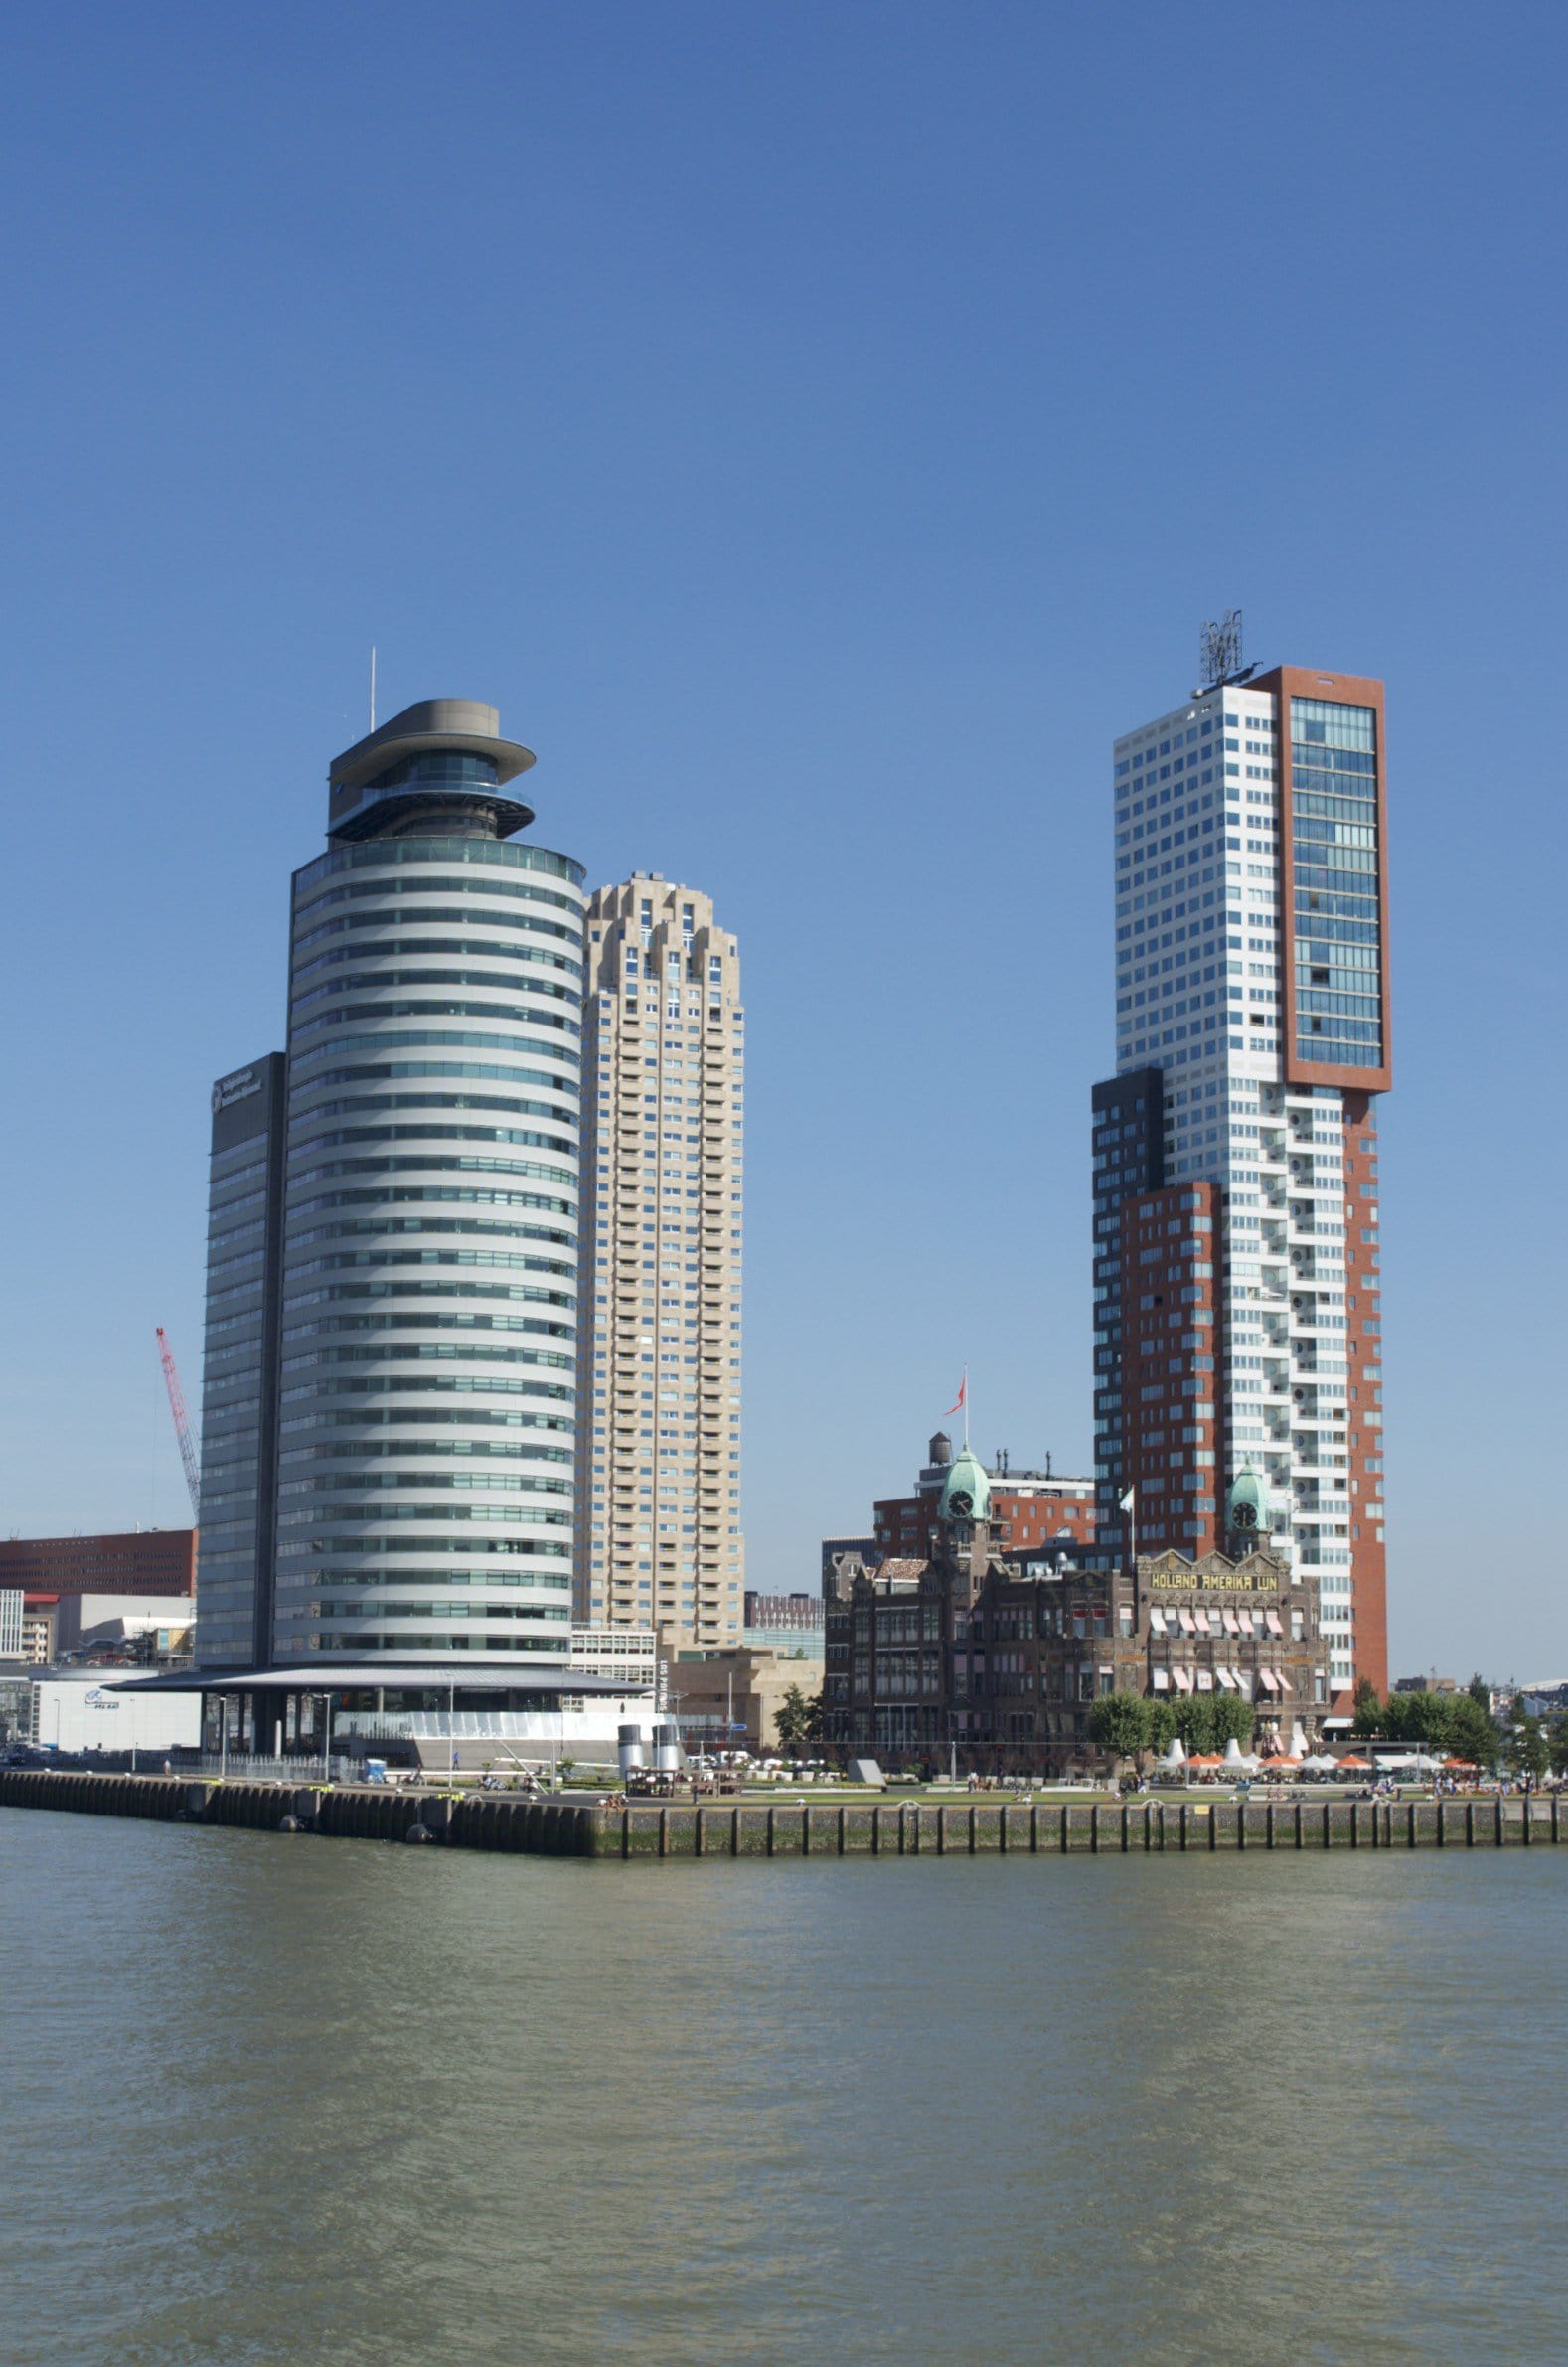 Hotel New York in Rotterdam